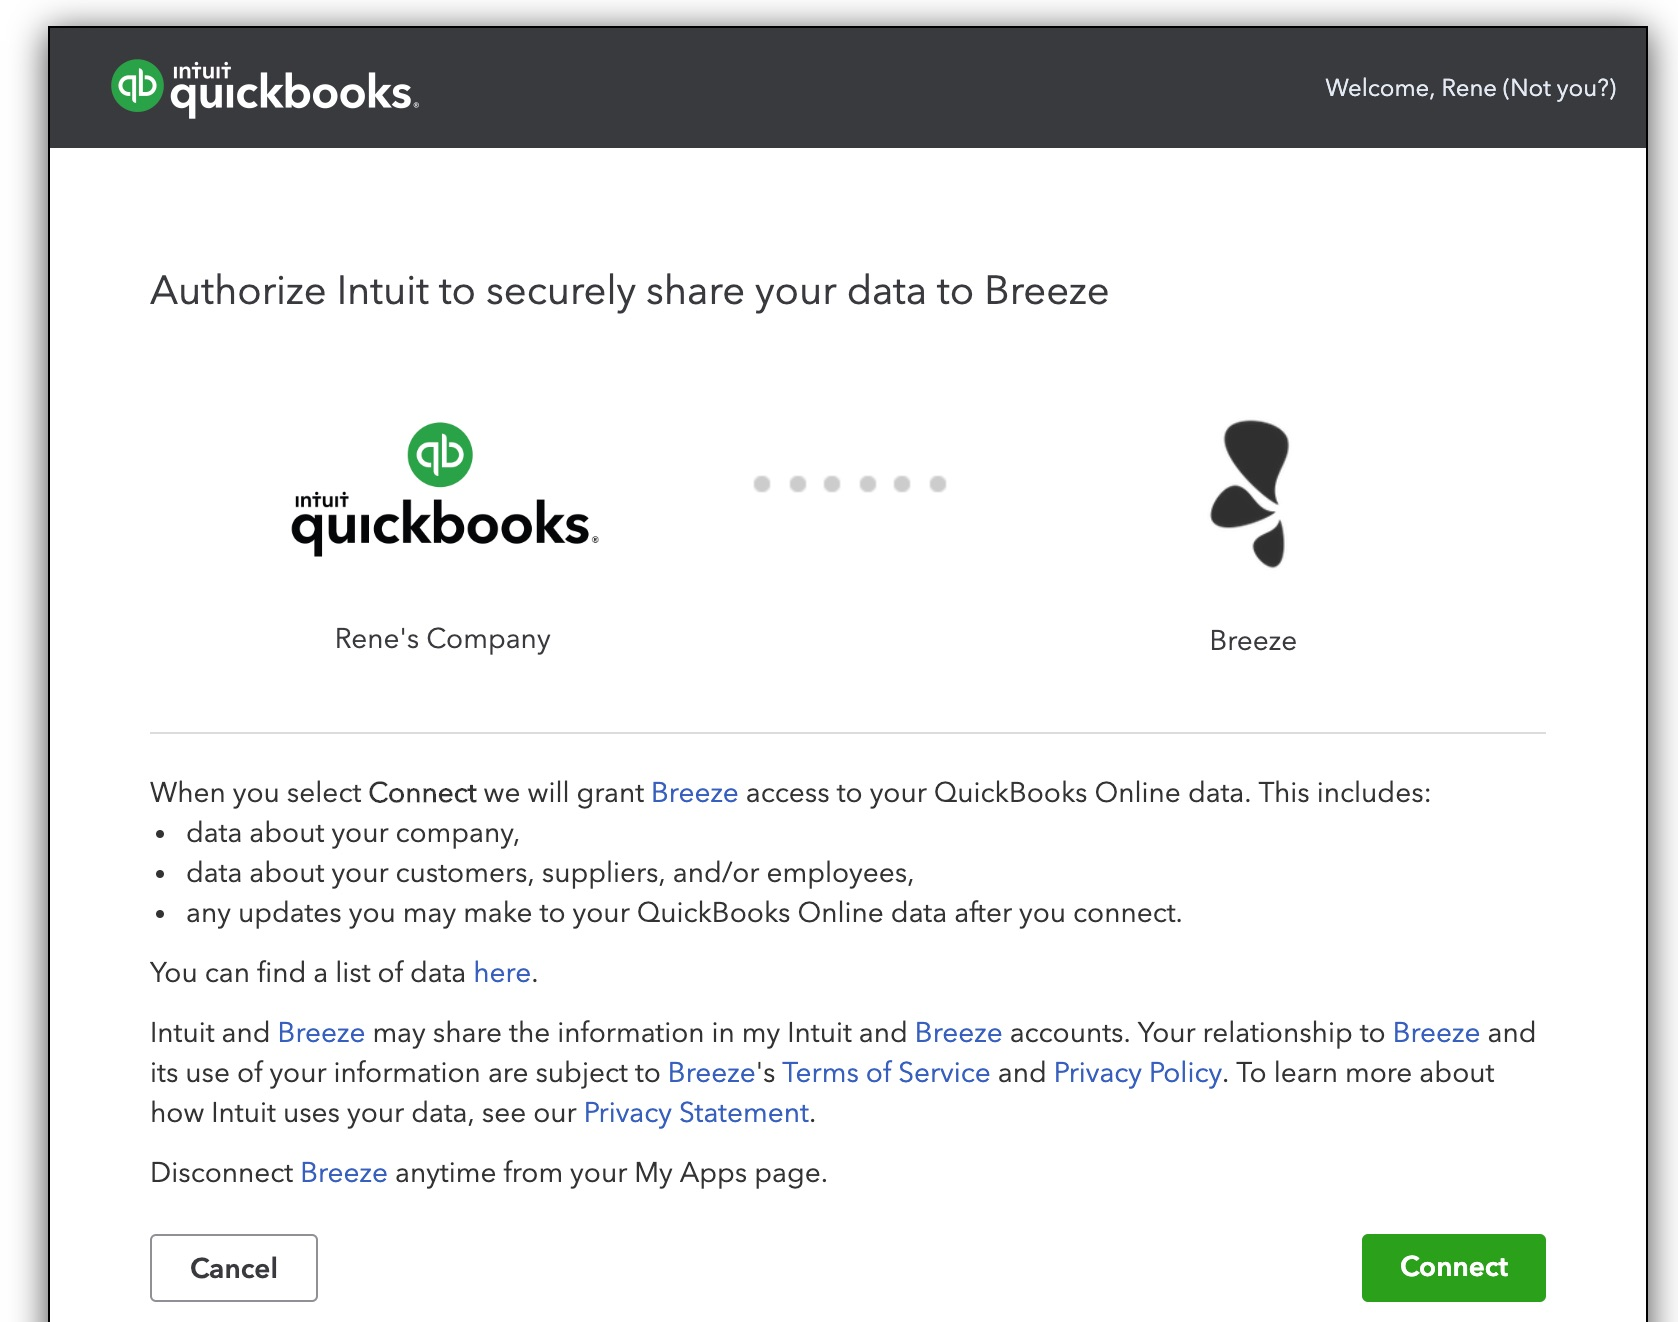 QuickBooks authorization